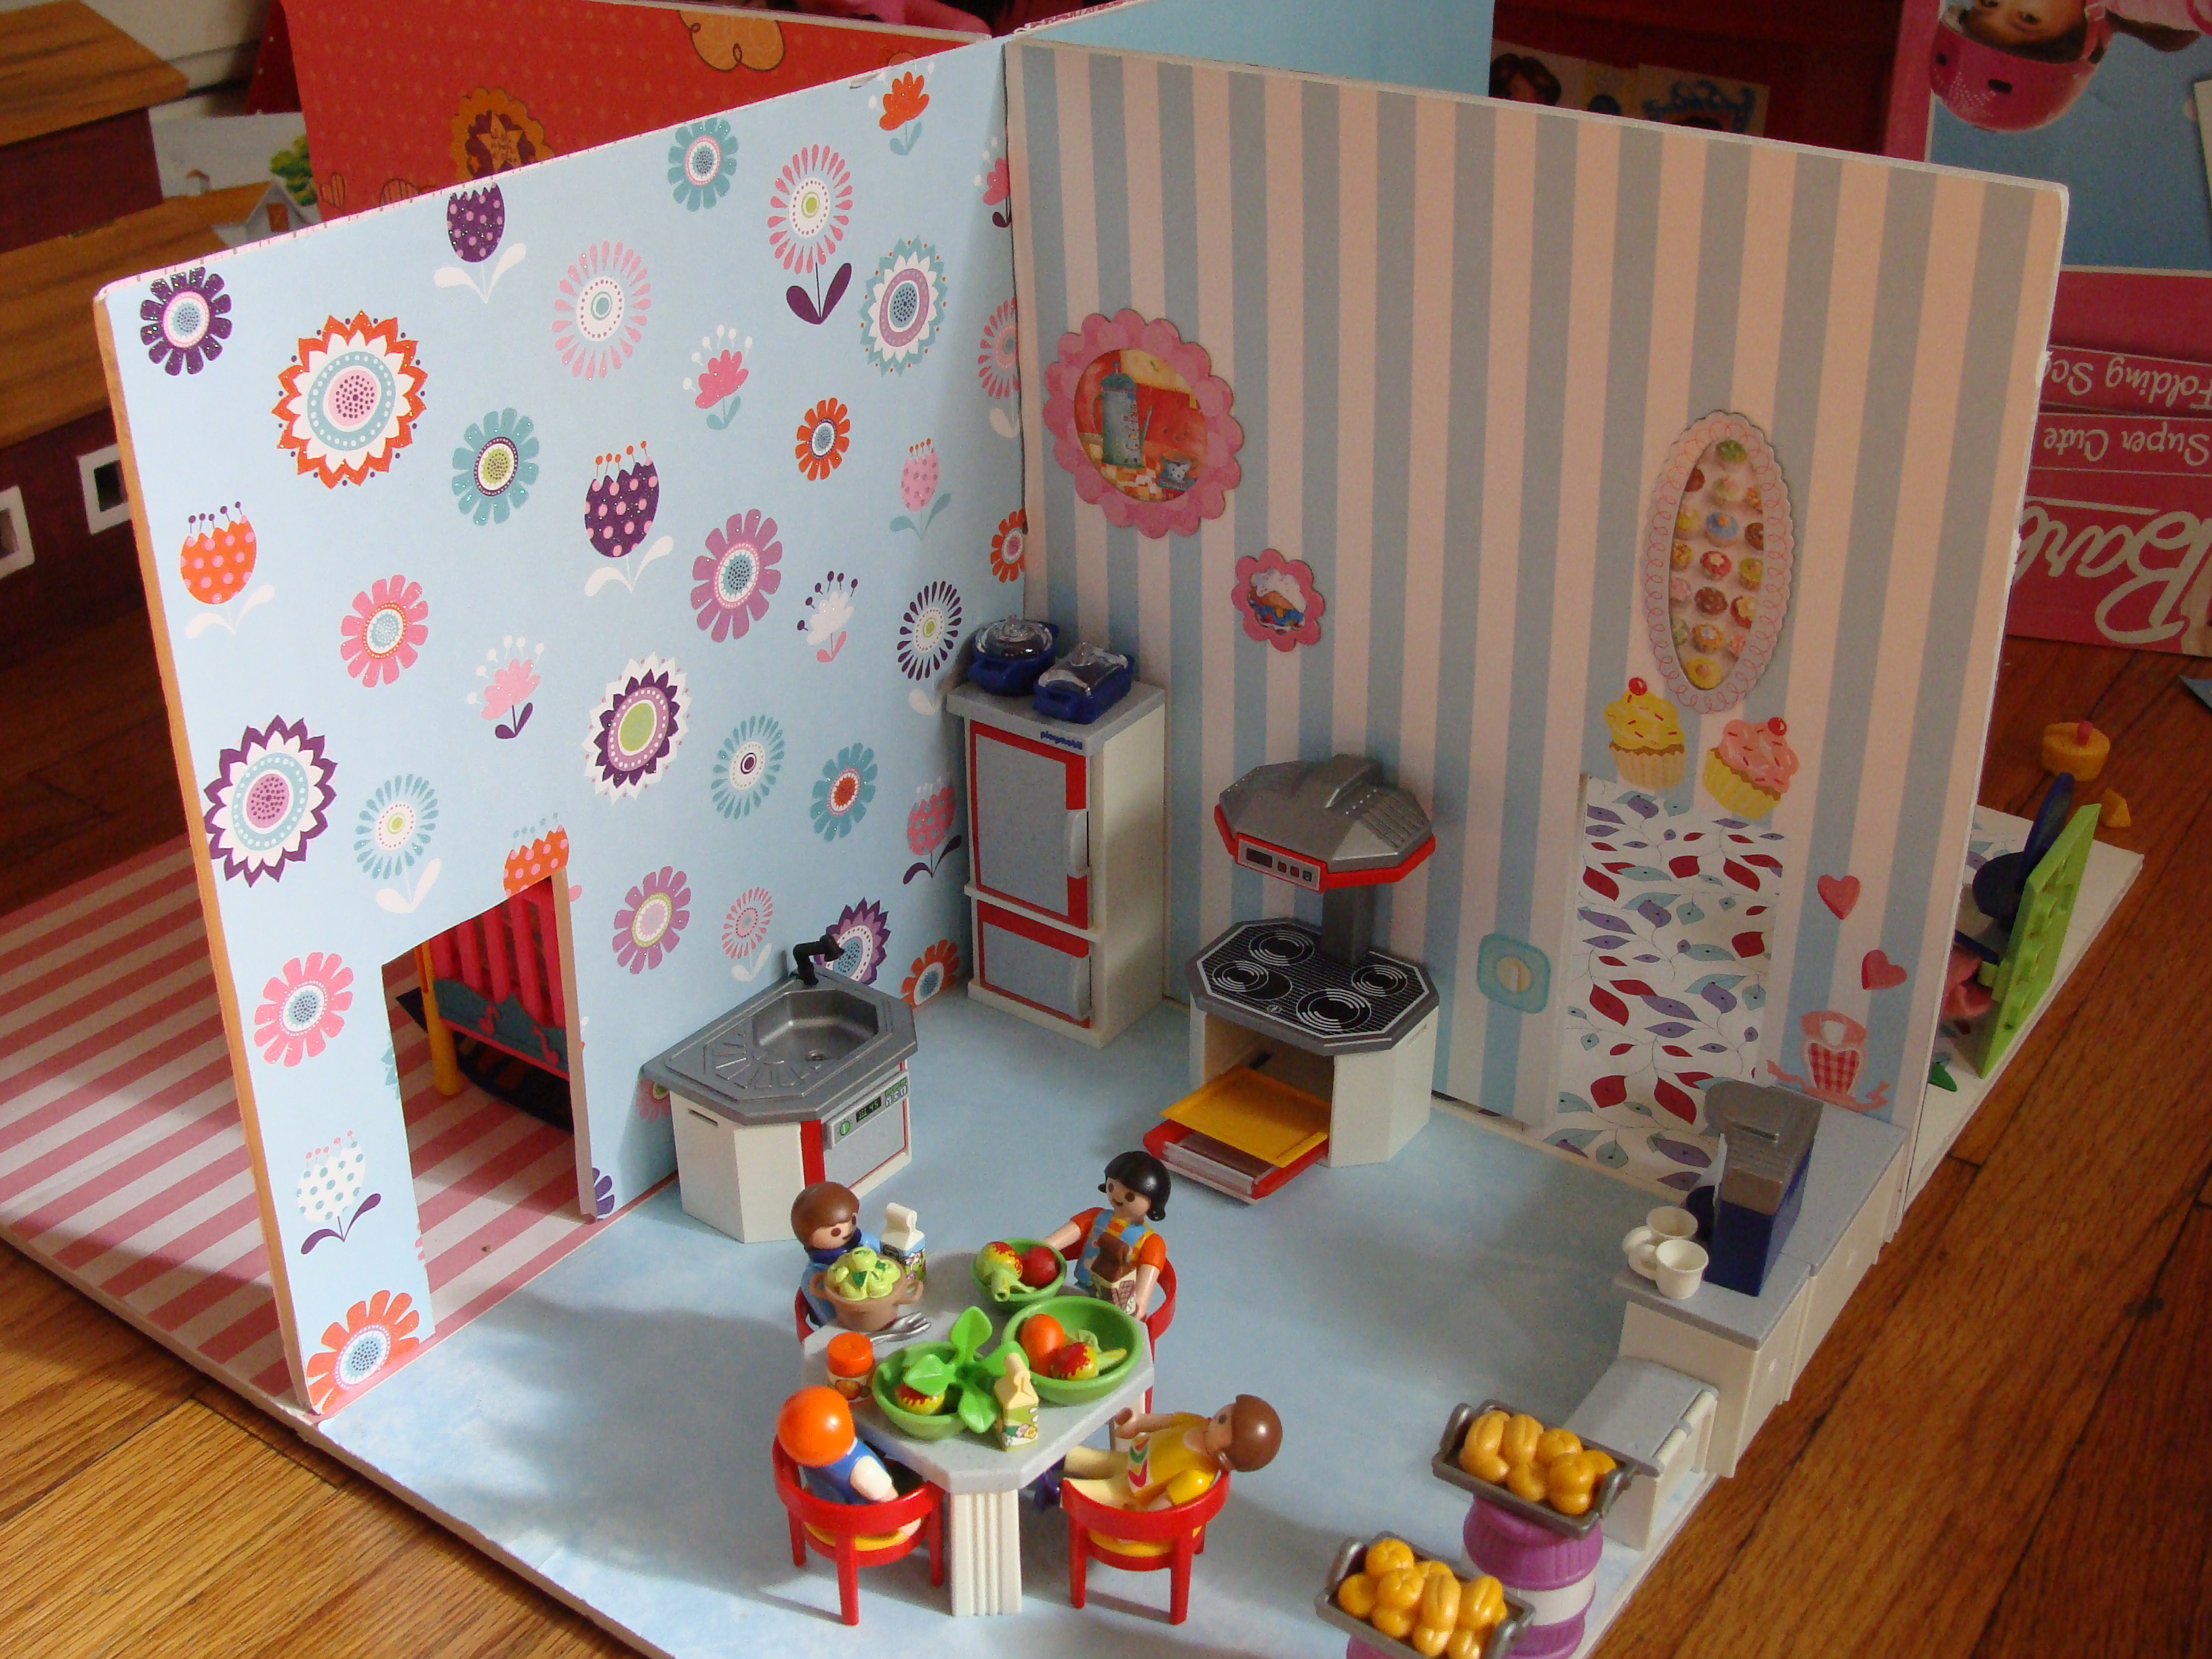 Picture of Dollhouse for Small Play Set Figures